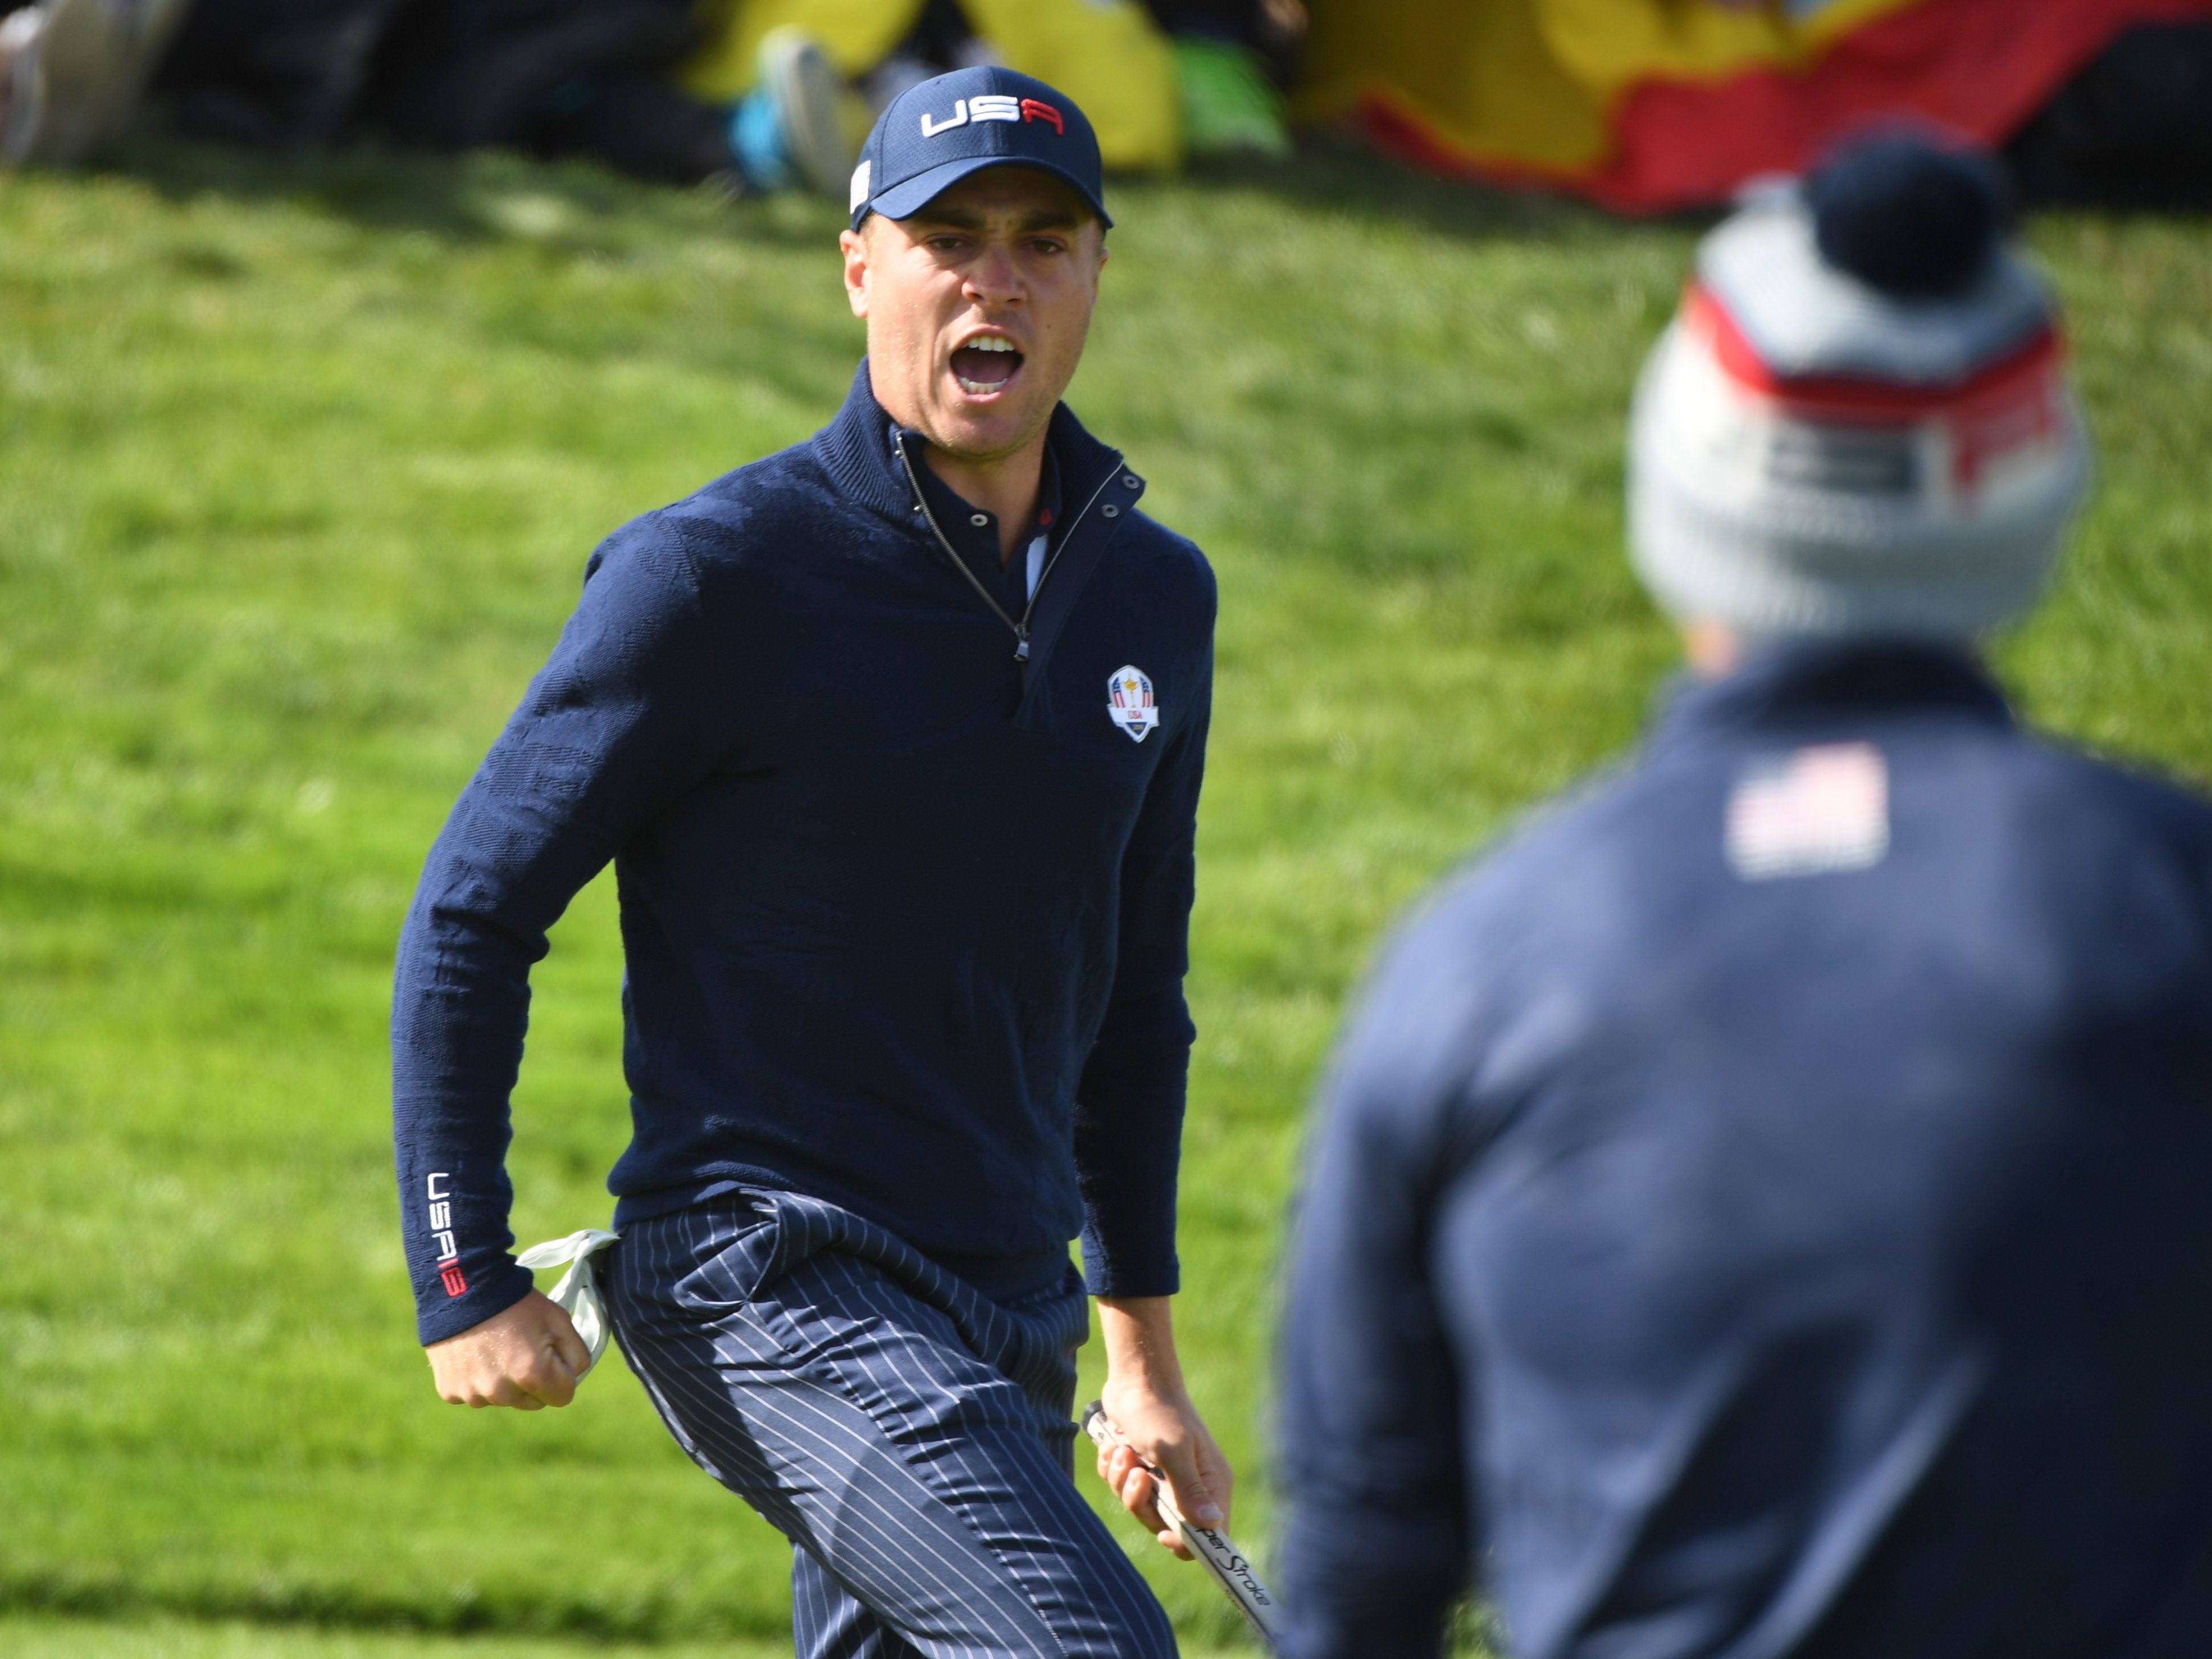 Justin Thomas exults after sinking a putt to win his early fourball match on Saturday with Jordan Spieth. They defeated Ian Poulter and John Rahm 2 and 1.